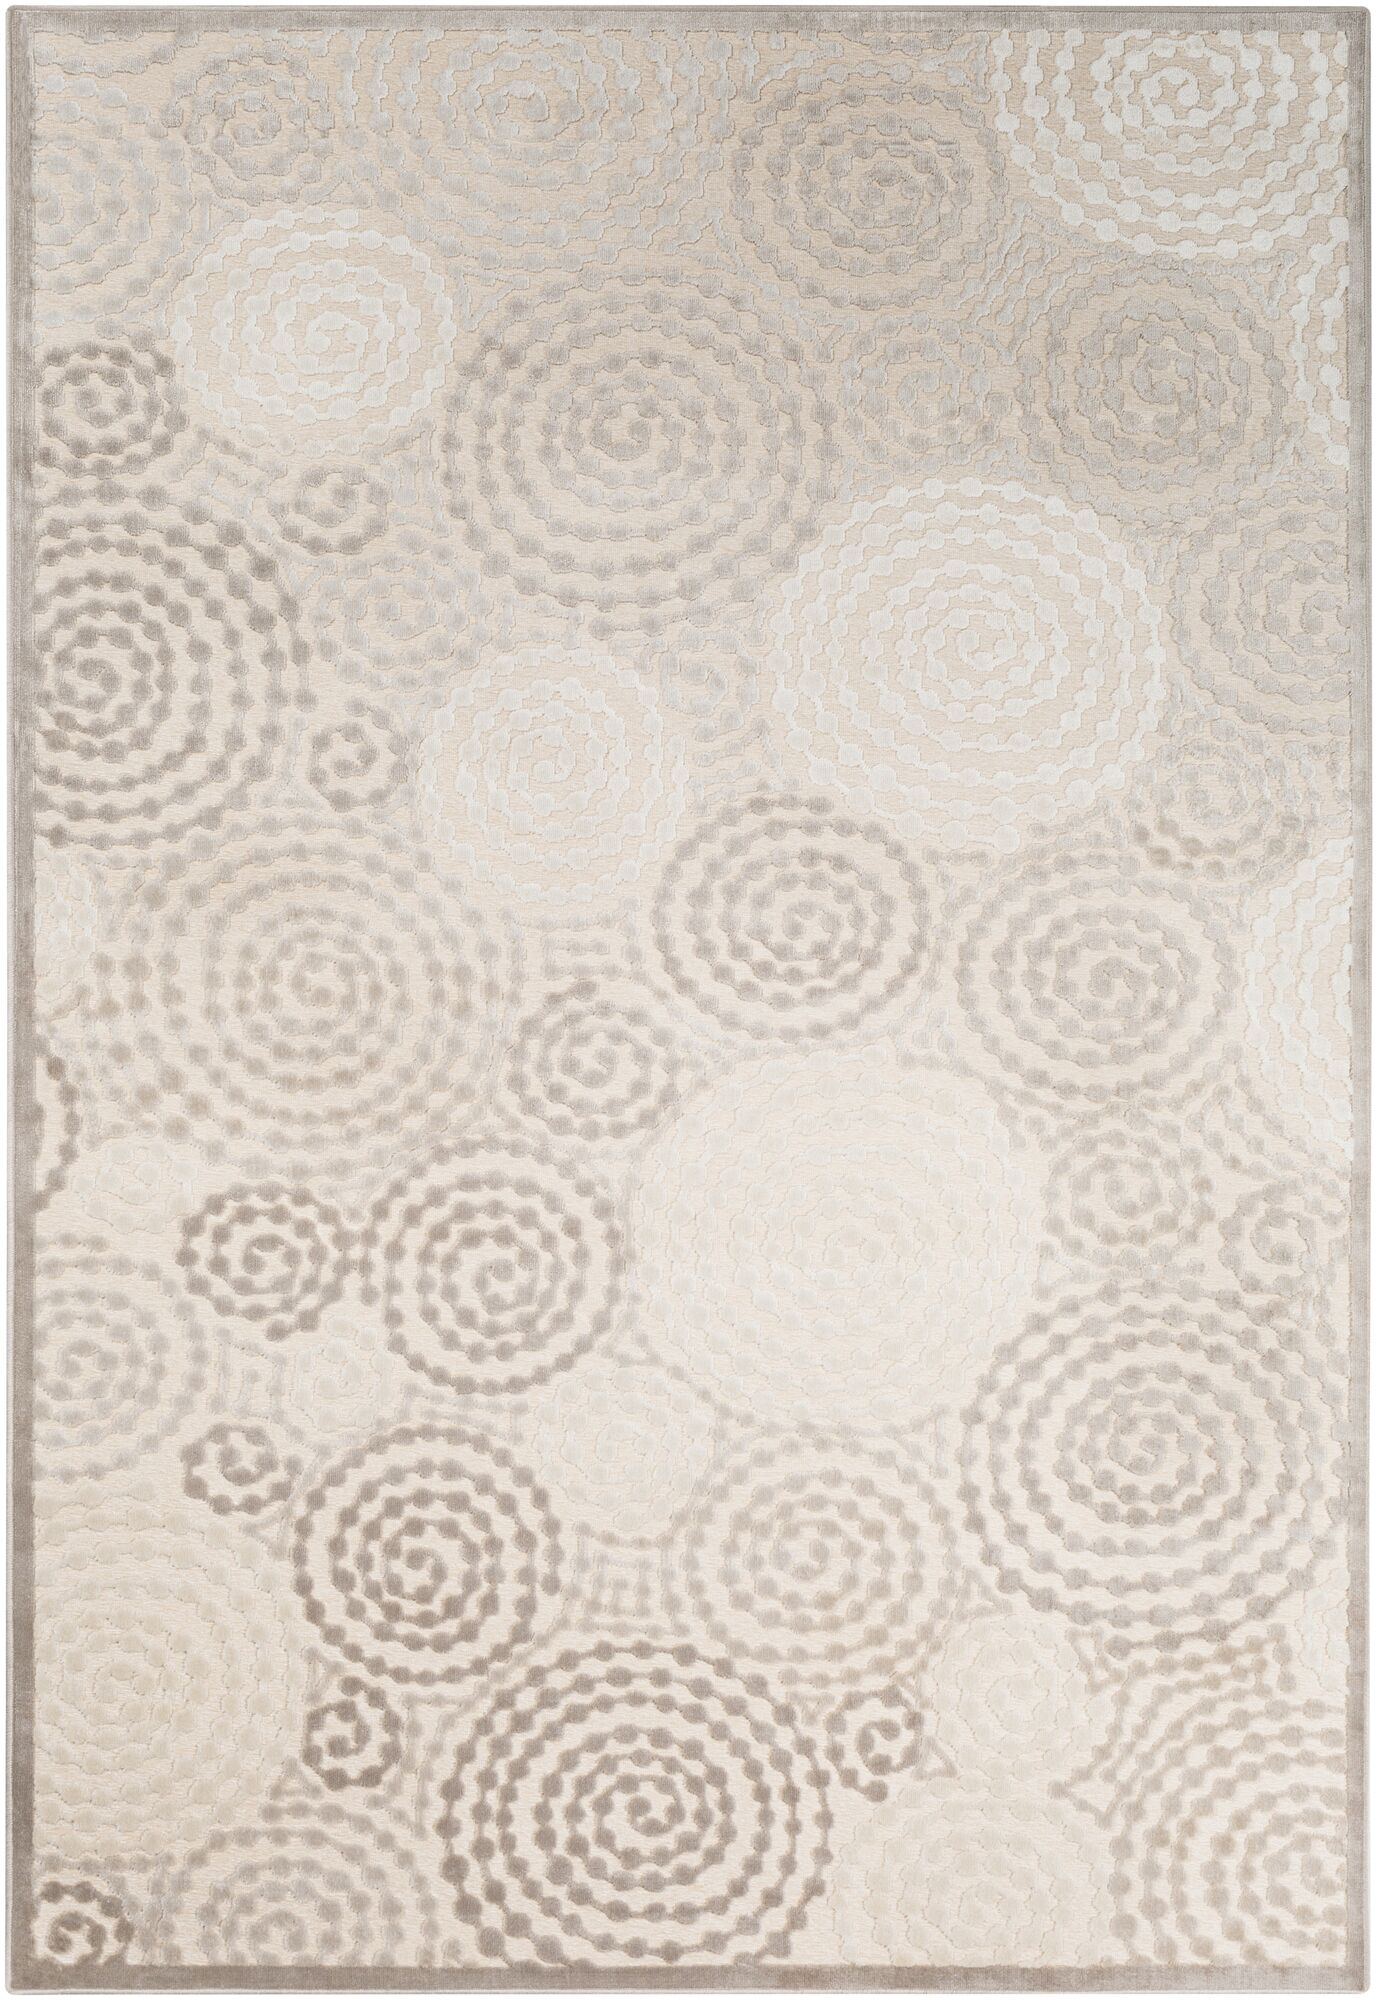 Reva Transitional Swirl Cream Area Rug Rug Size: Rectangle 4' x 5'7